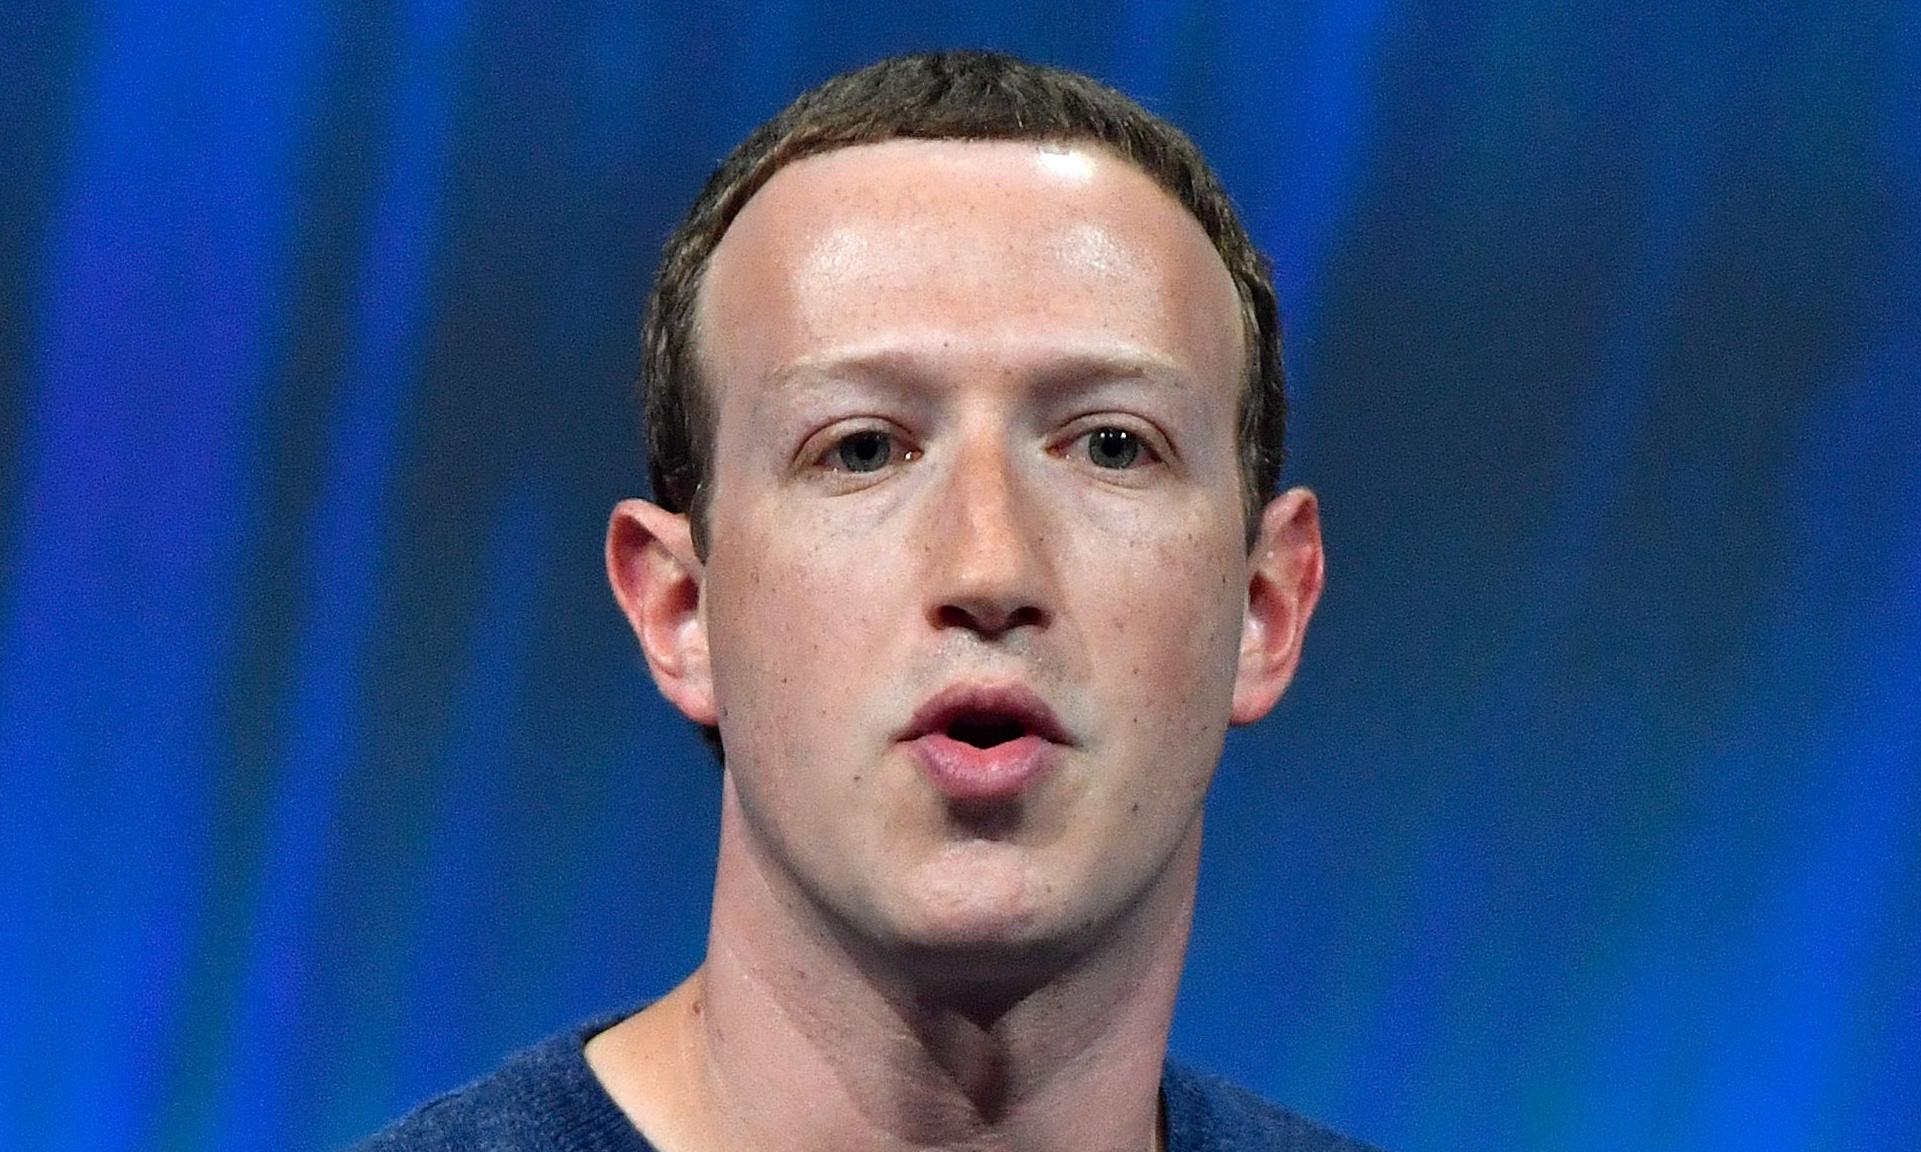 Facebook expects FTC fine of up to $5bn in privacy investigation